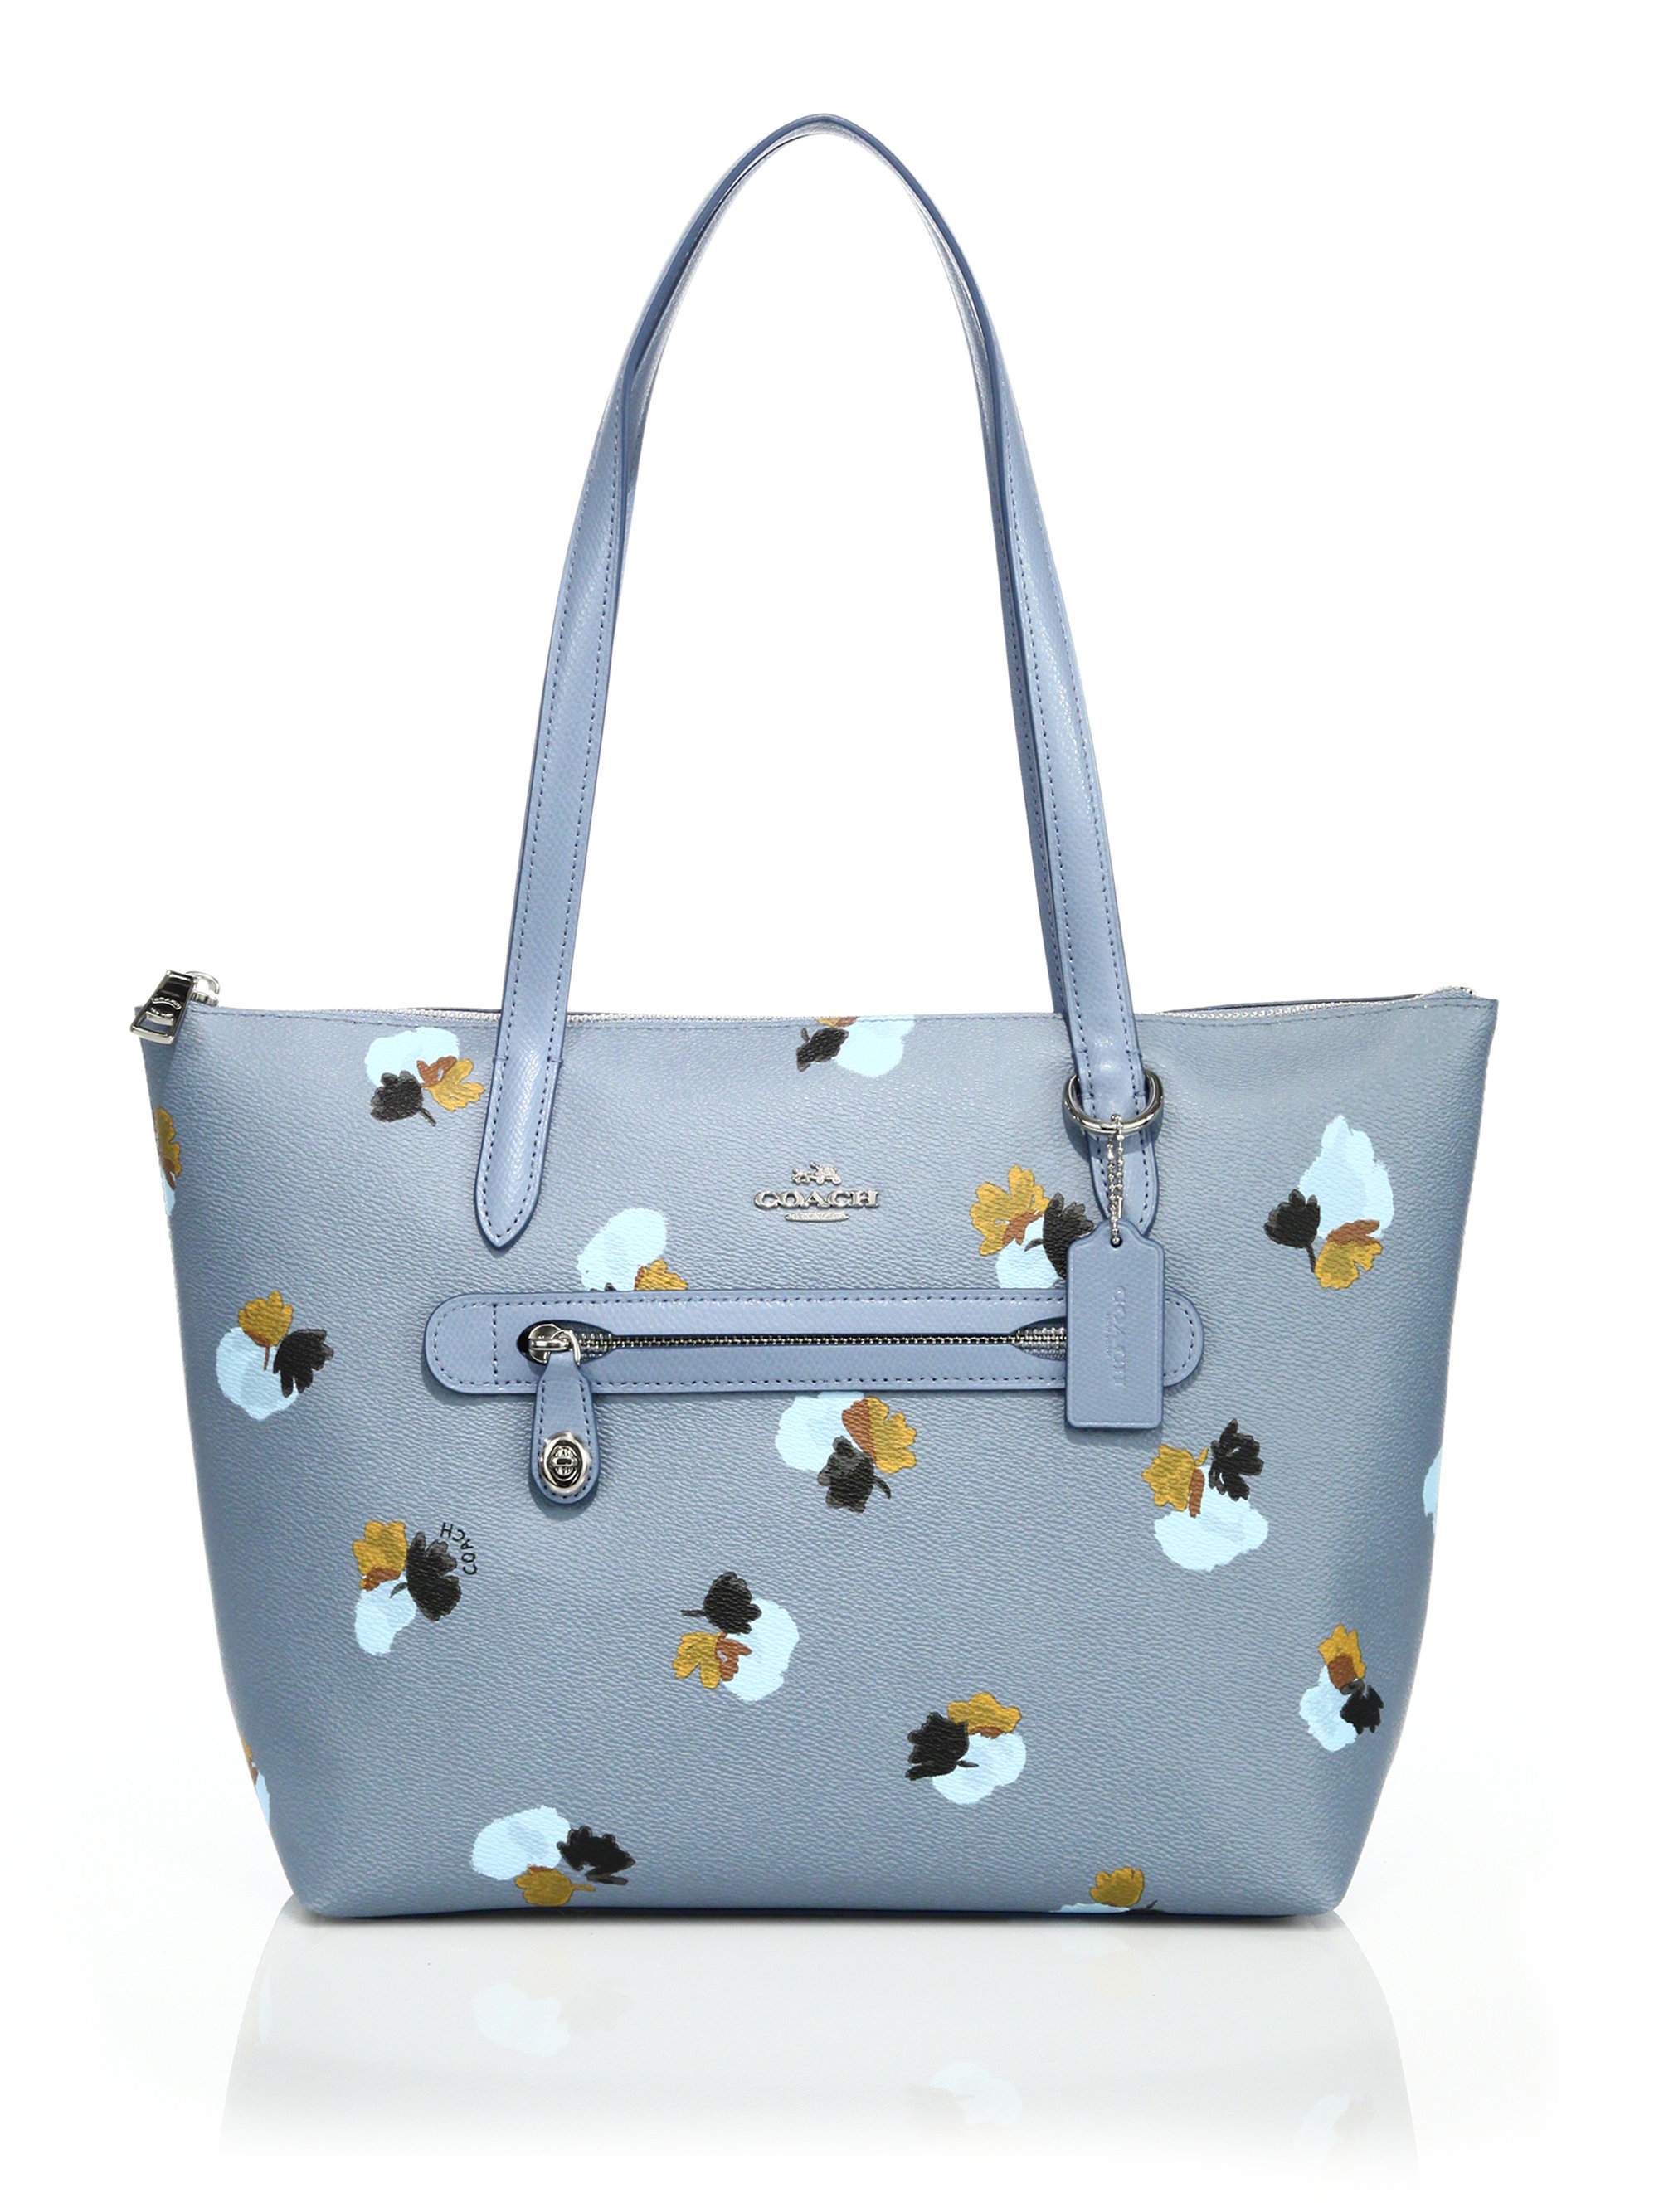 Lyst - Coach Taylor Floral-print Coated Canvas Tote In Blue